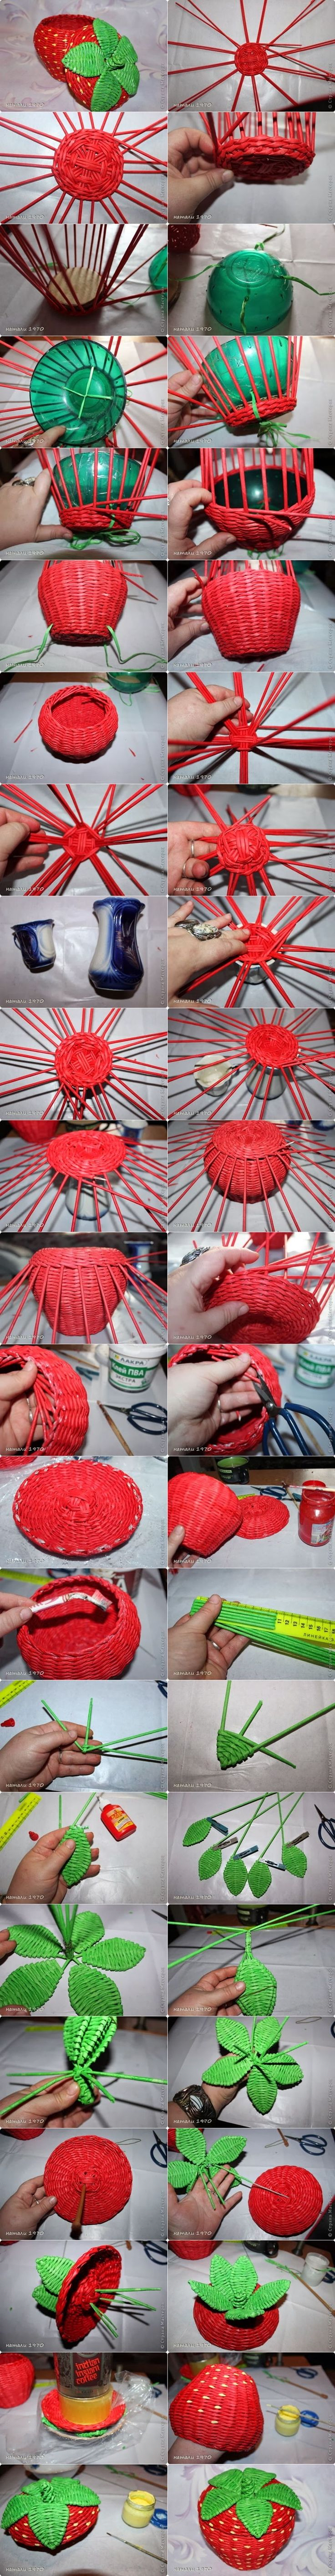 Make a Woven Strawberry Shaped Basket from Recycled Newspaper | UsefulDIY.com